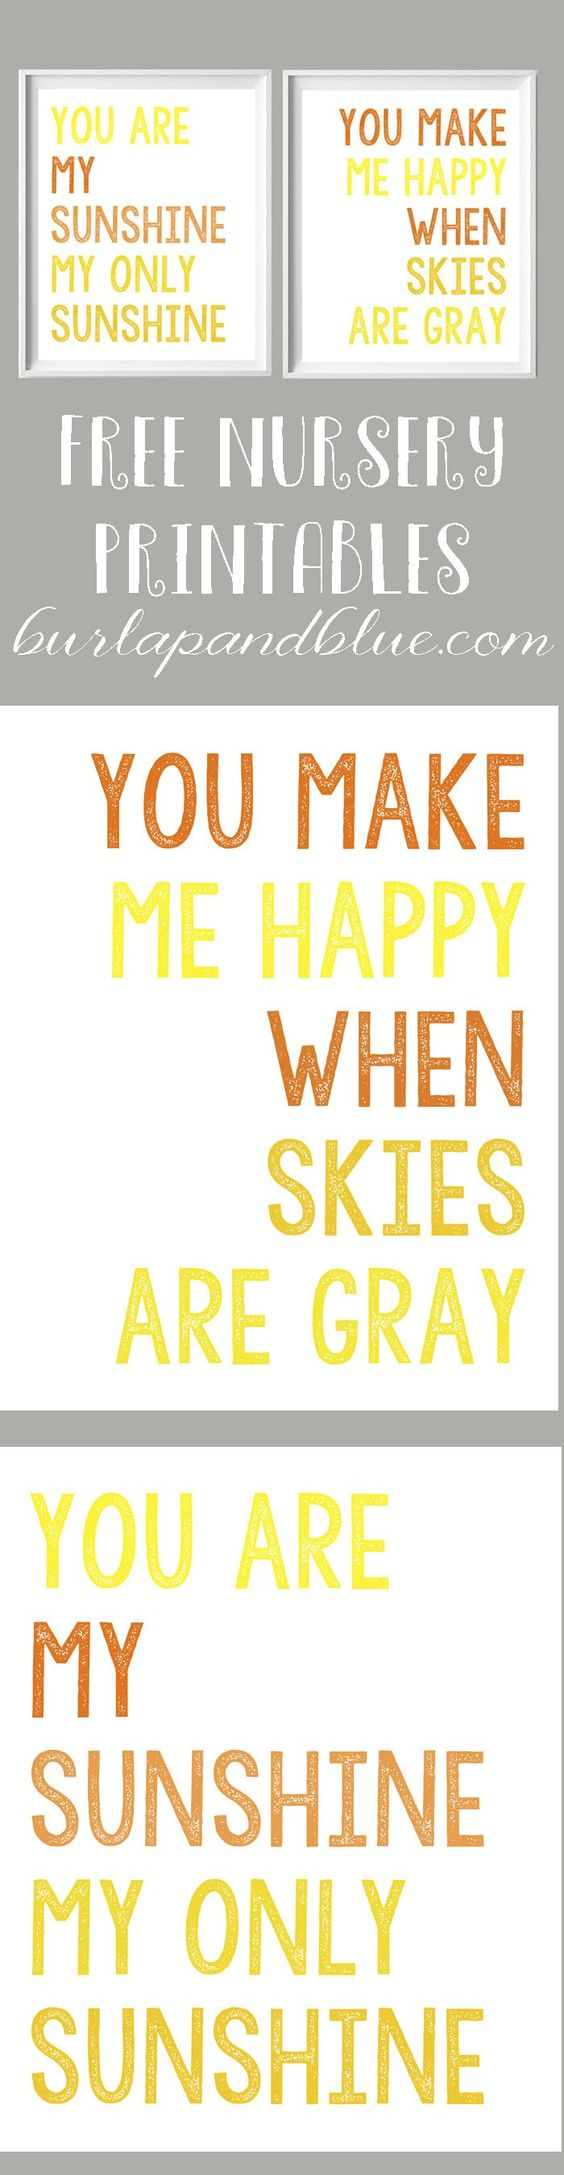 You are my sunshine & You make me happy when skies are gray--free nursery printables!